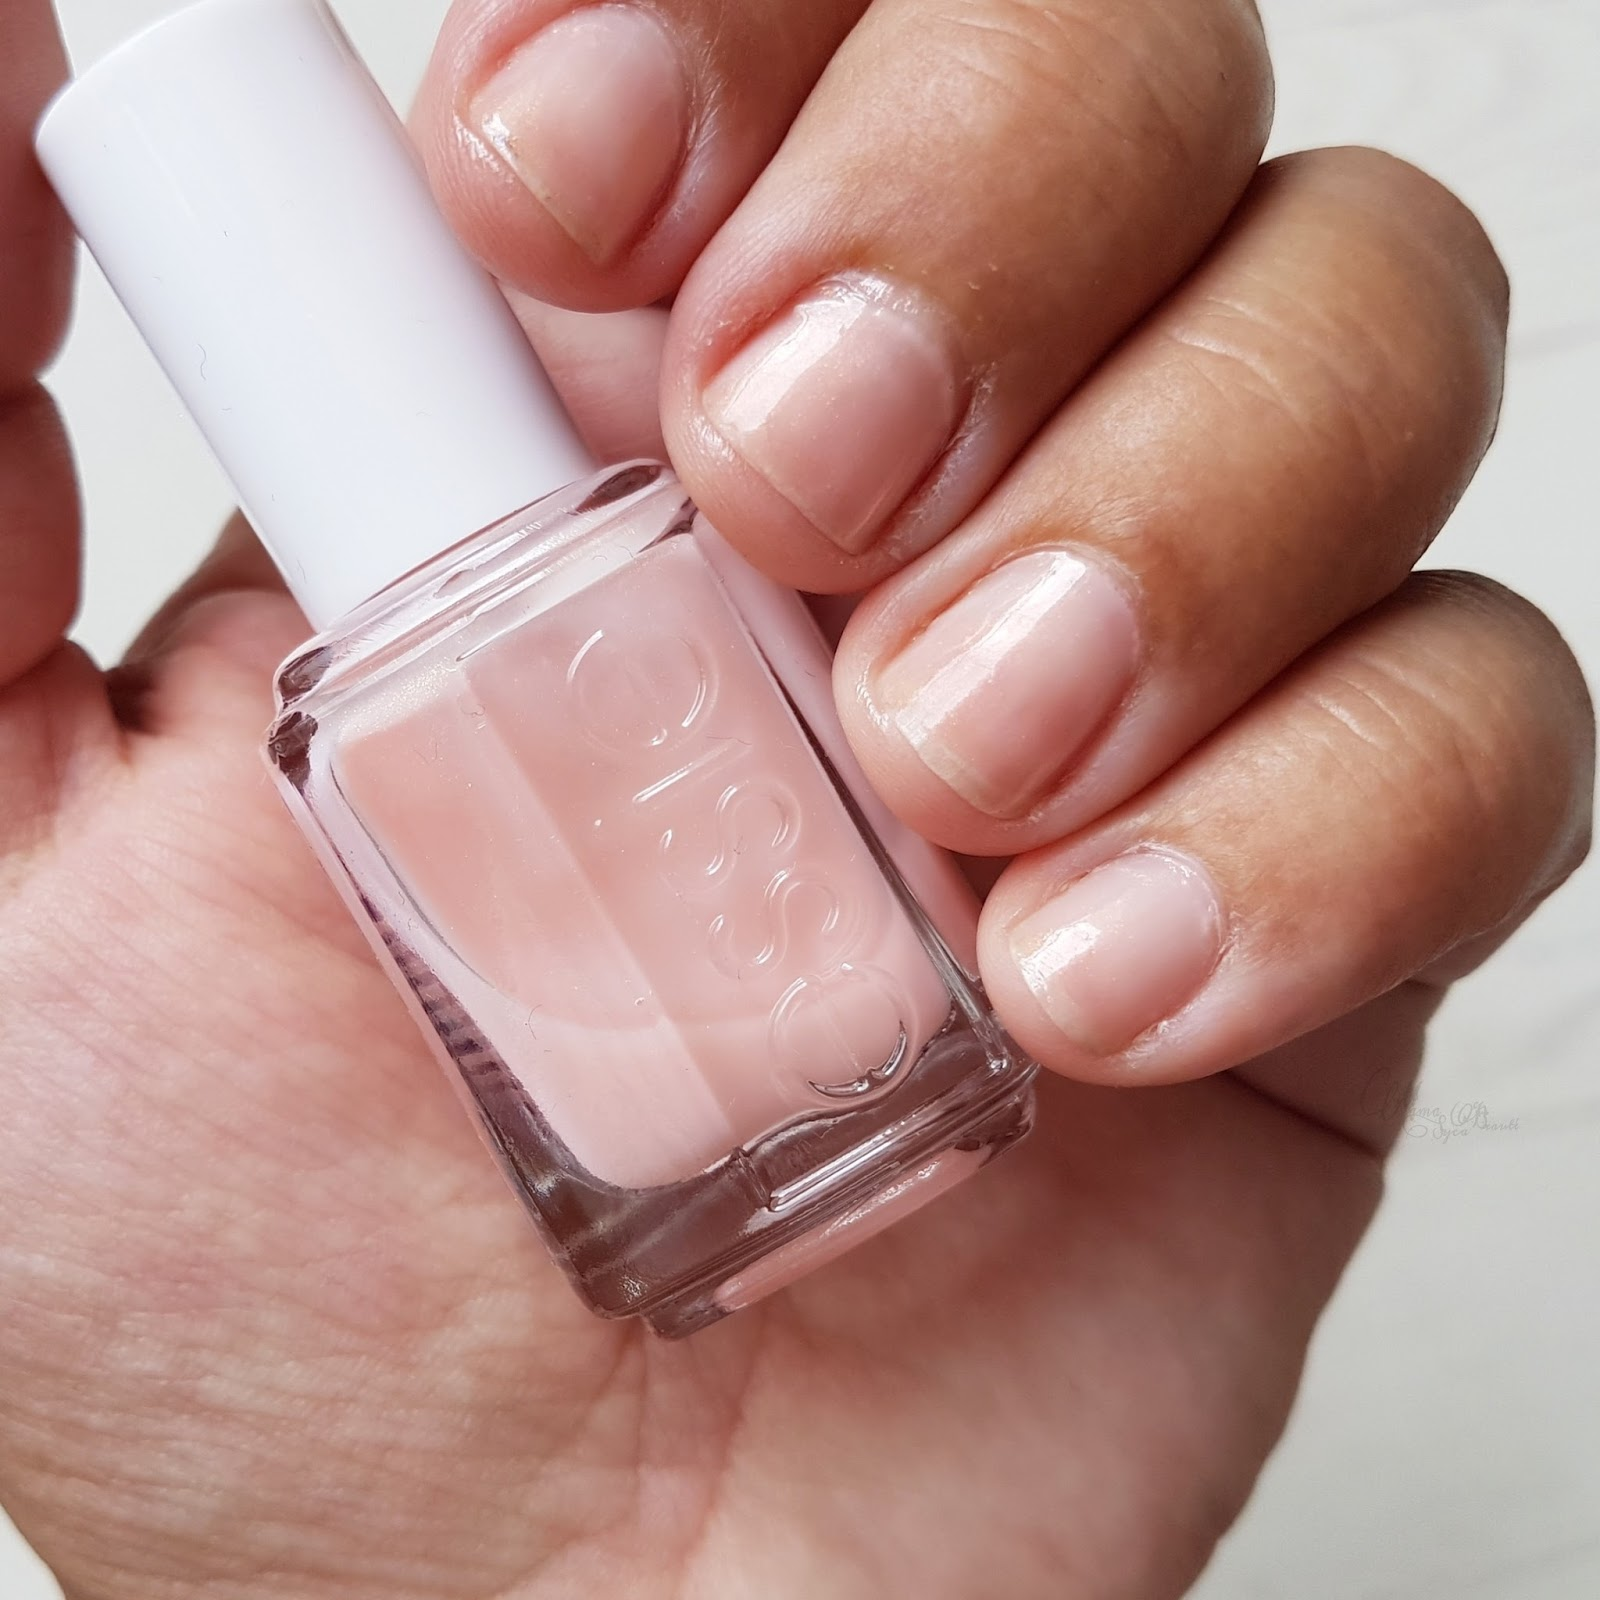 avis_essie_treat_love_color_vernis_soin_mama_syca_beaute